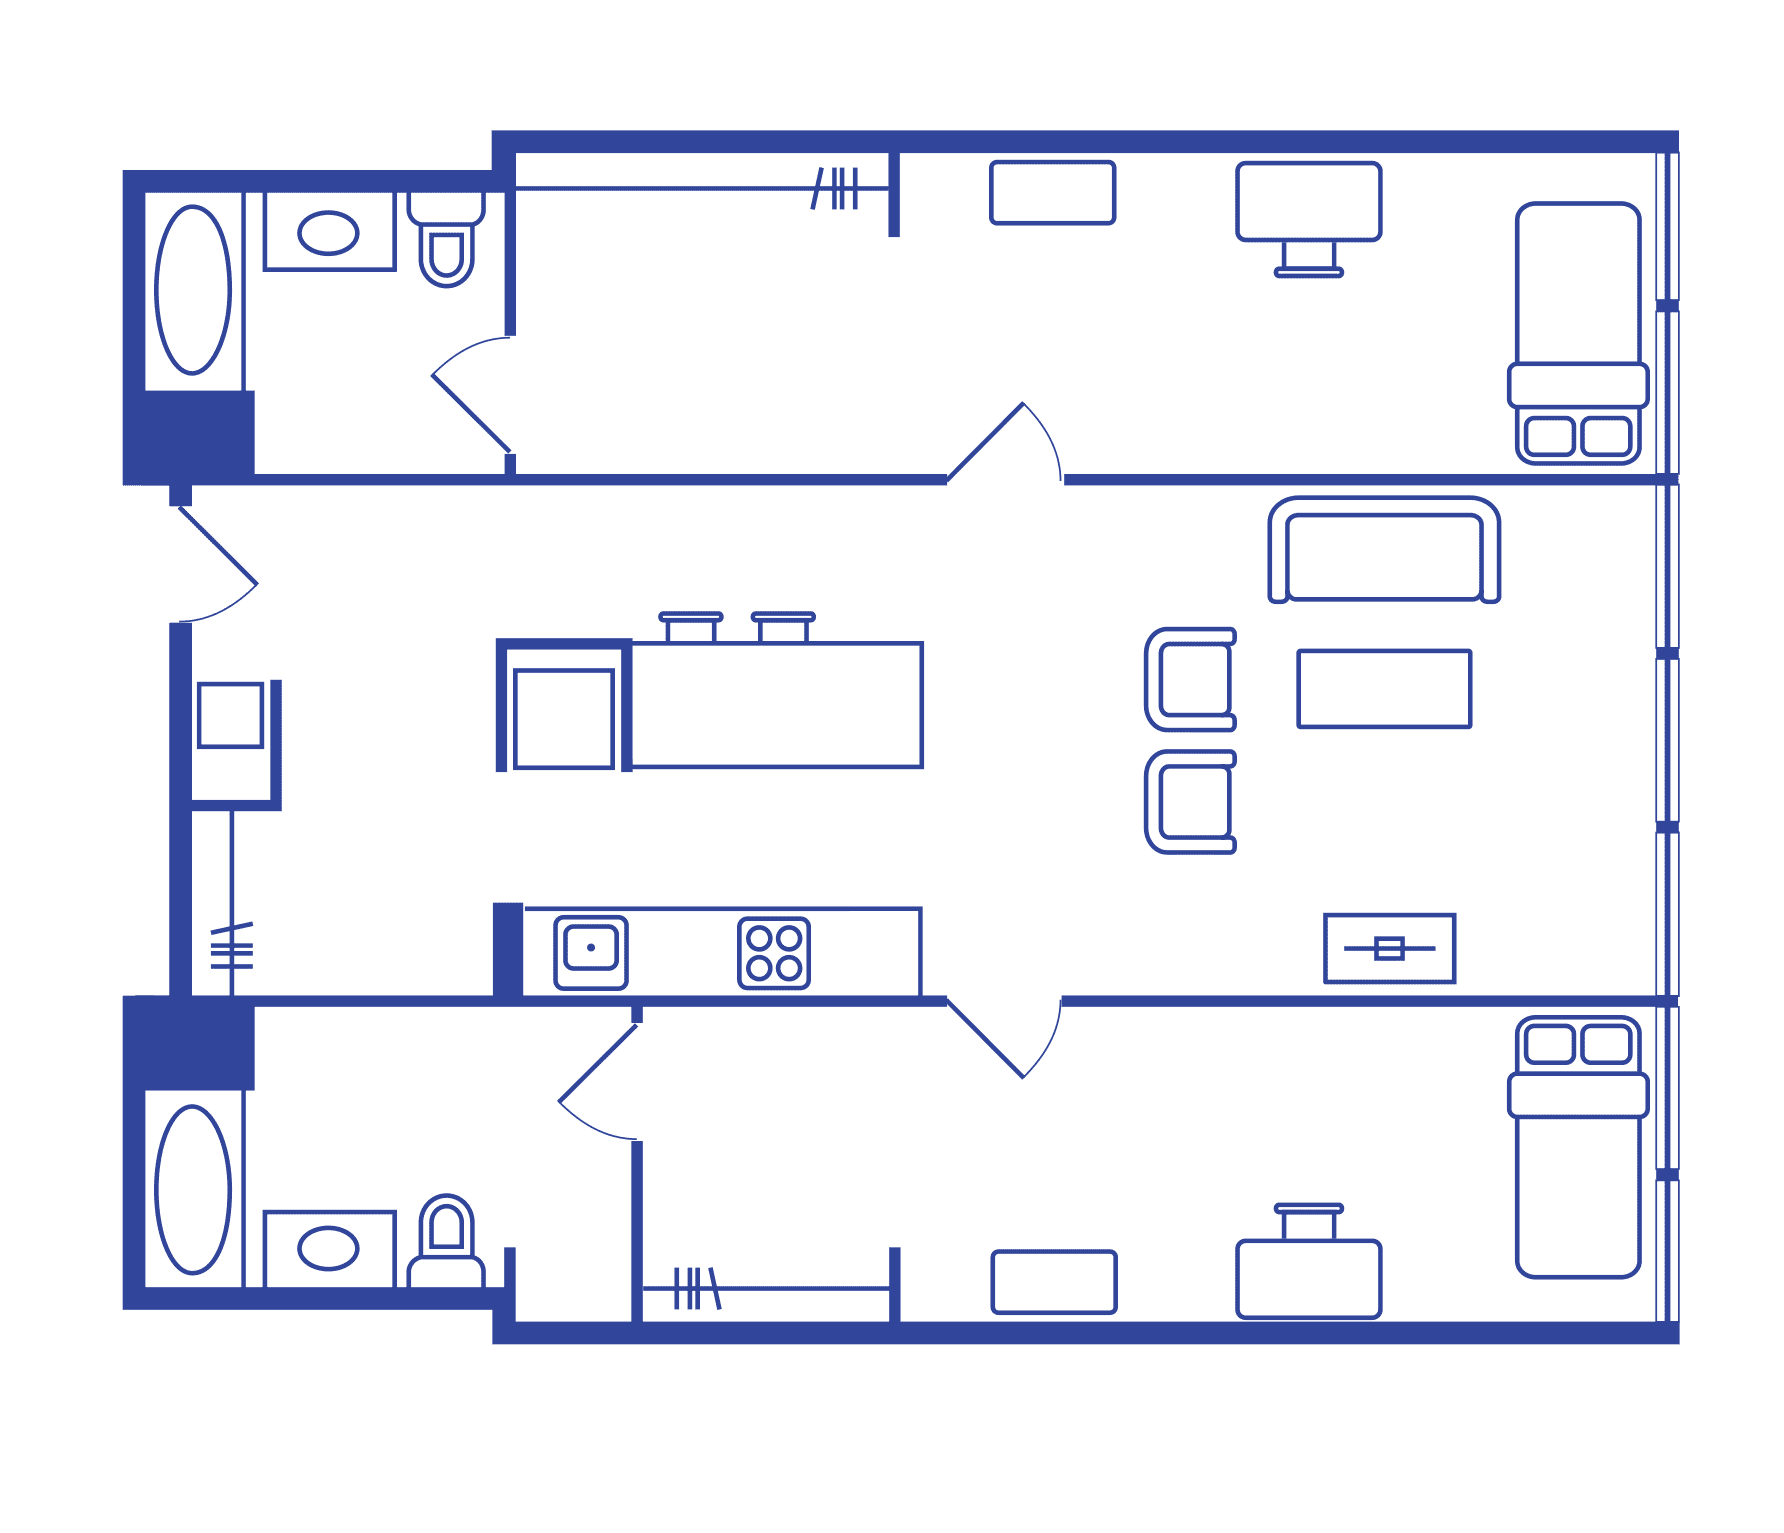 2 Bedroom Floorplan 1